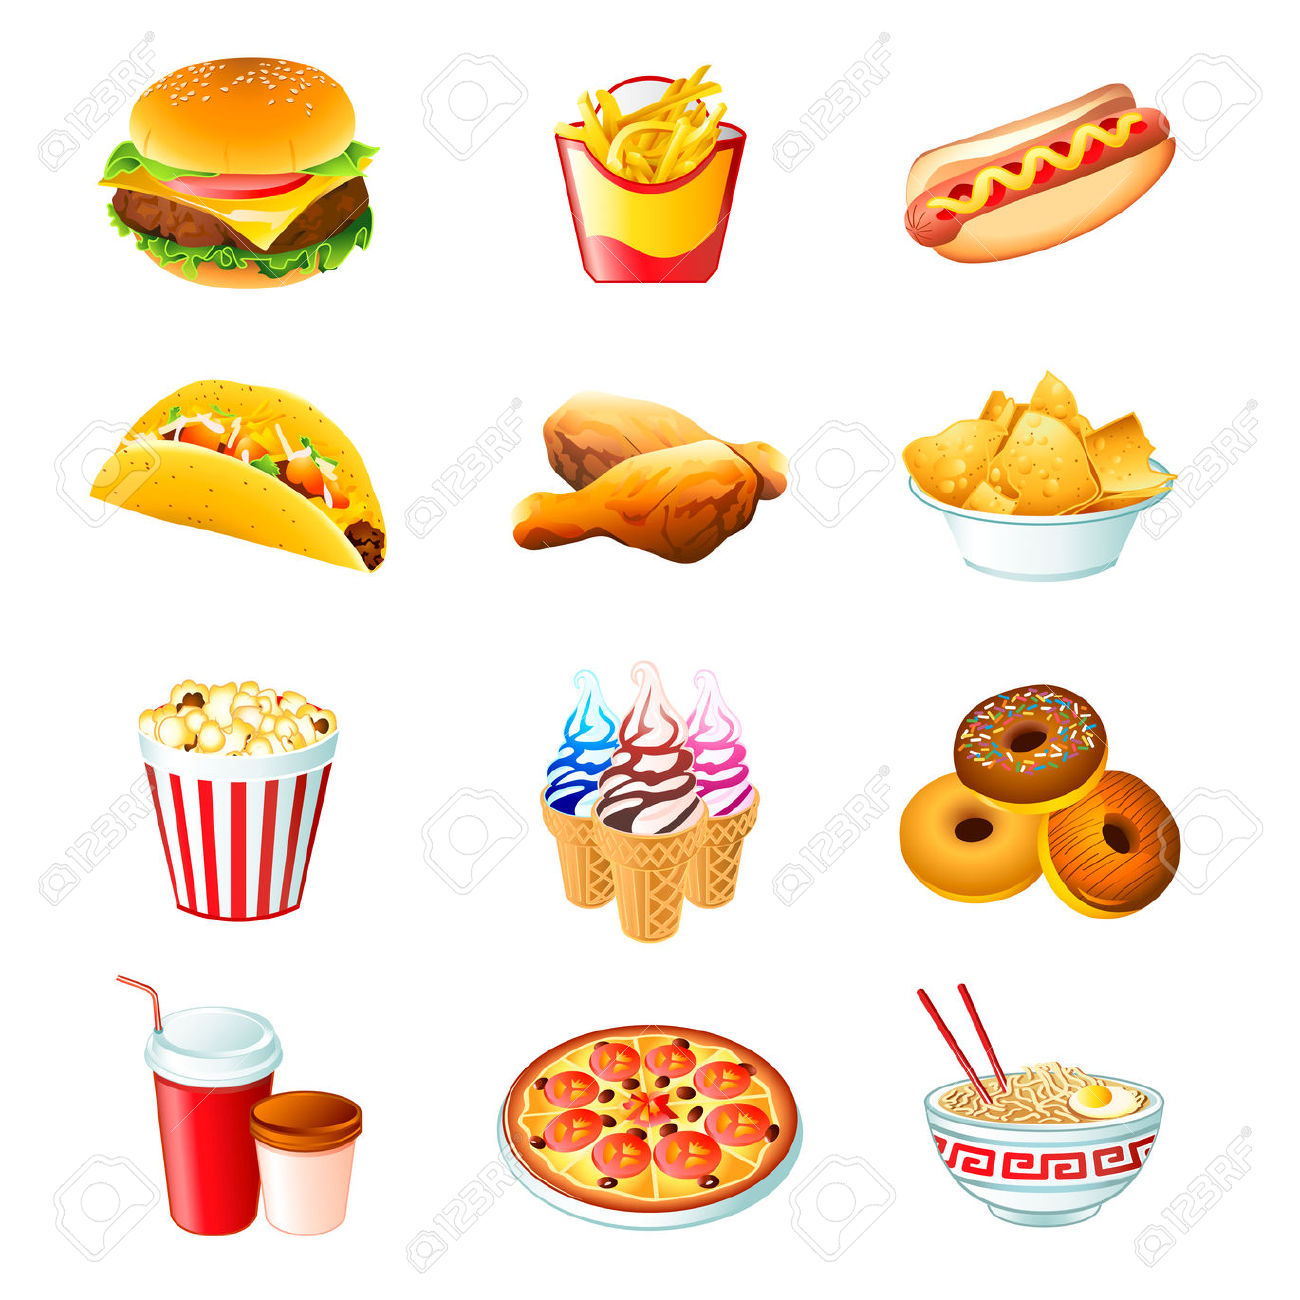 Colorful Icons With Fast Food Meals Isolated Royalty Free Cliparts.